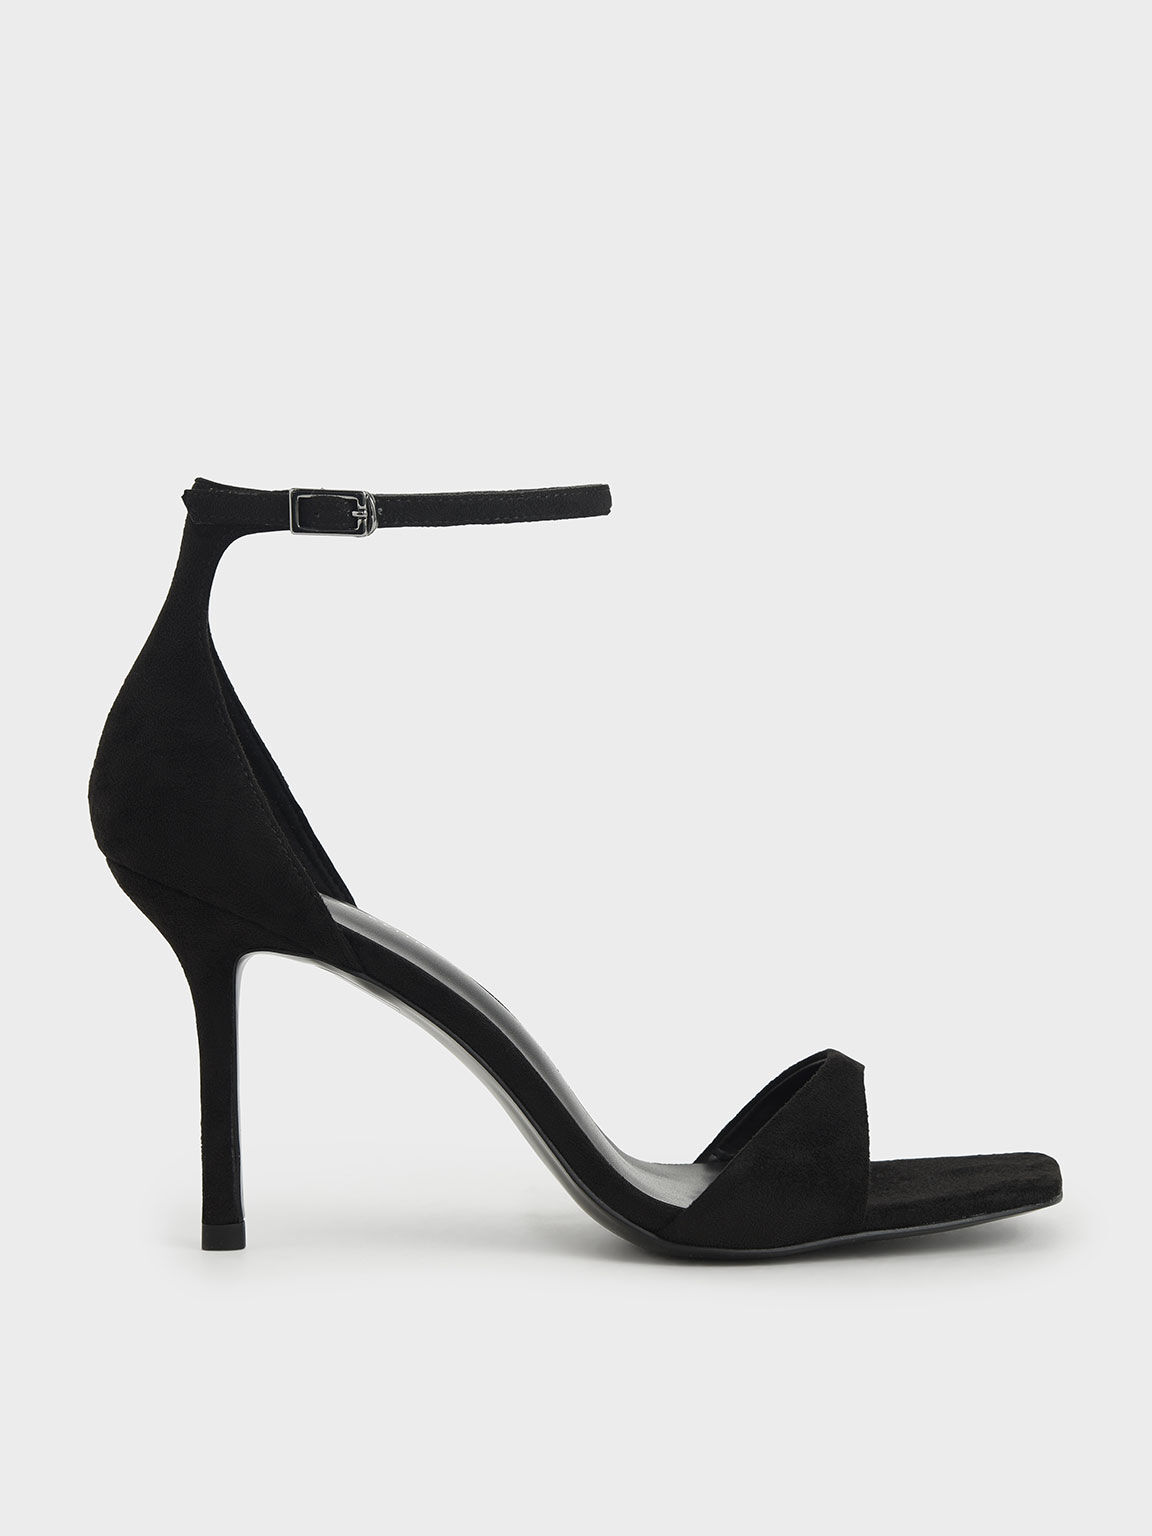 Textured Ankle Strap Heeled Sandals, Black, hi-res